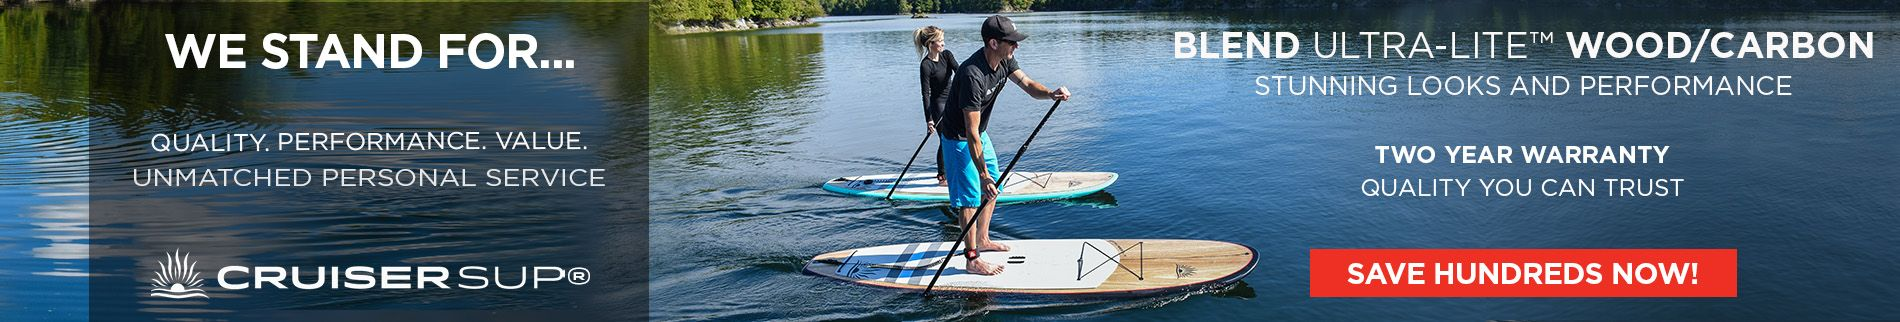 Cruiser SUP Blend We Stand For